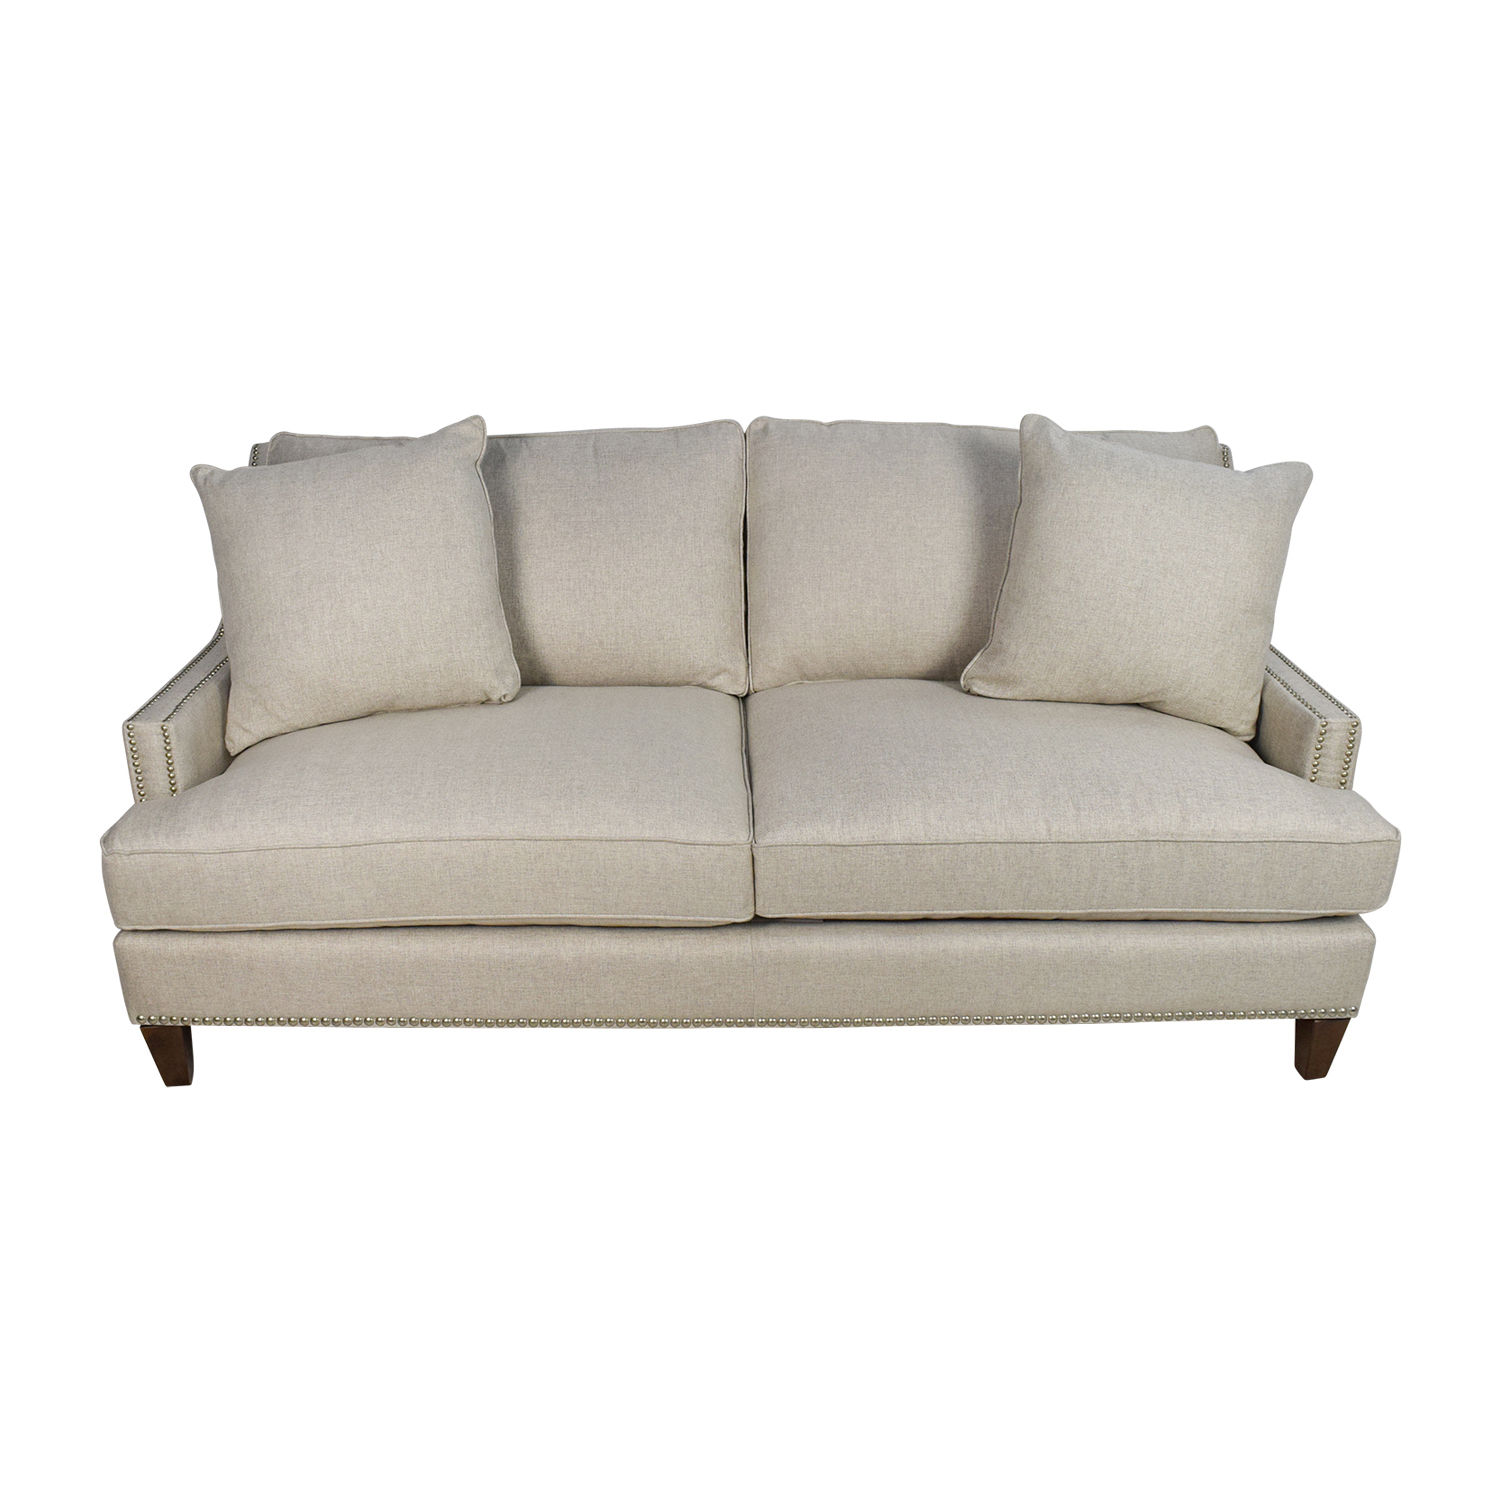 buy Jennifer Convertibles 3-Seater Beige Sofa Jennifer Convertibles